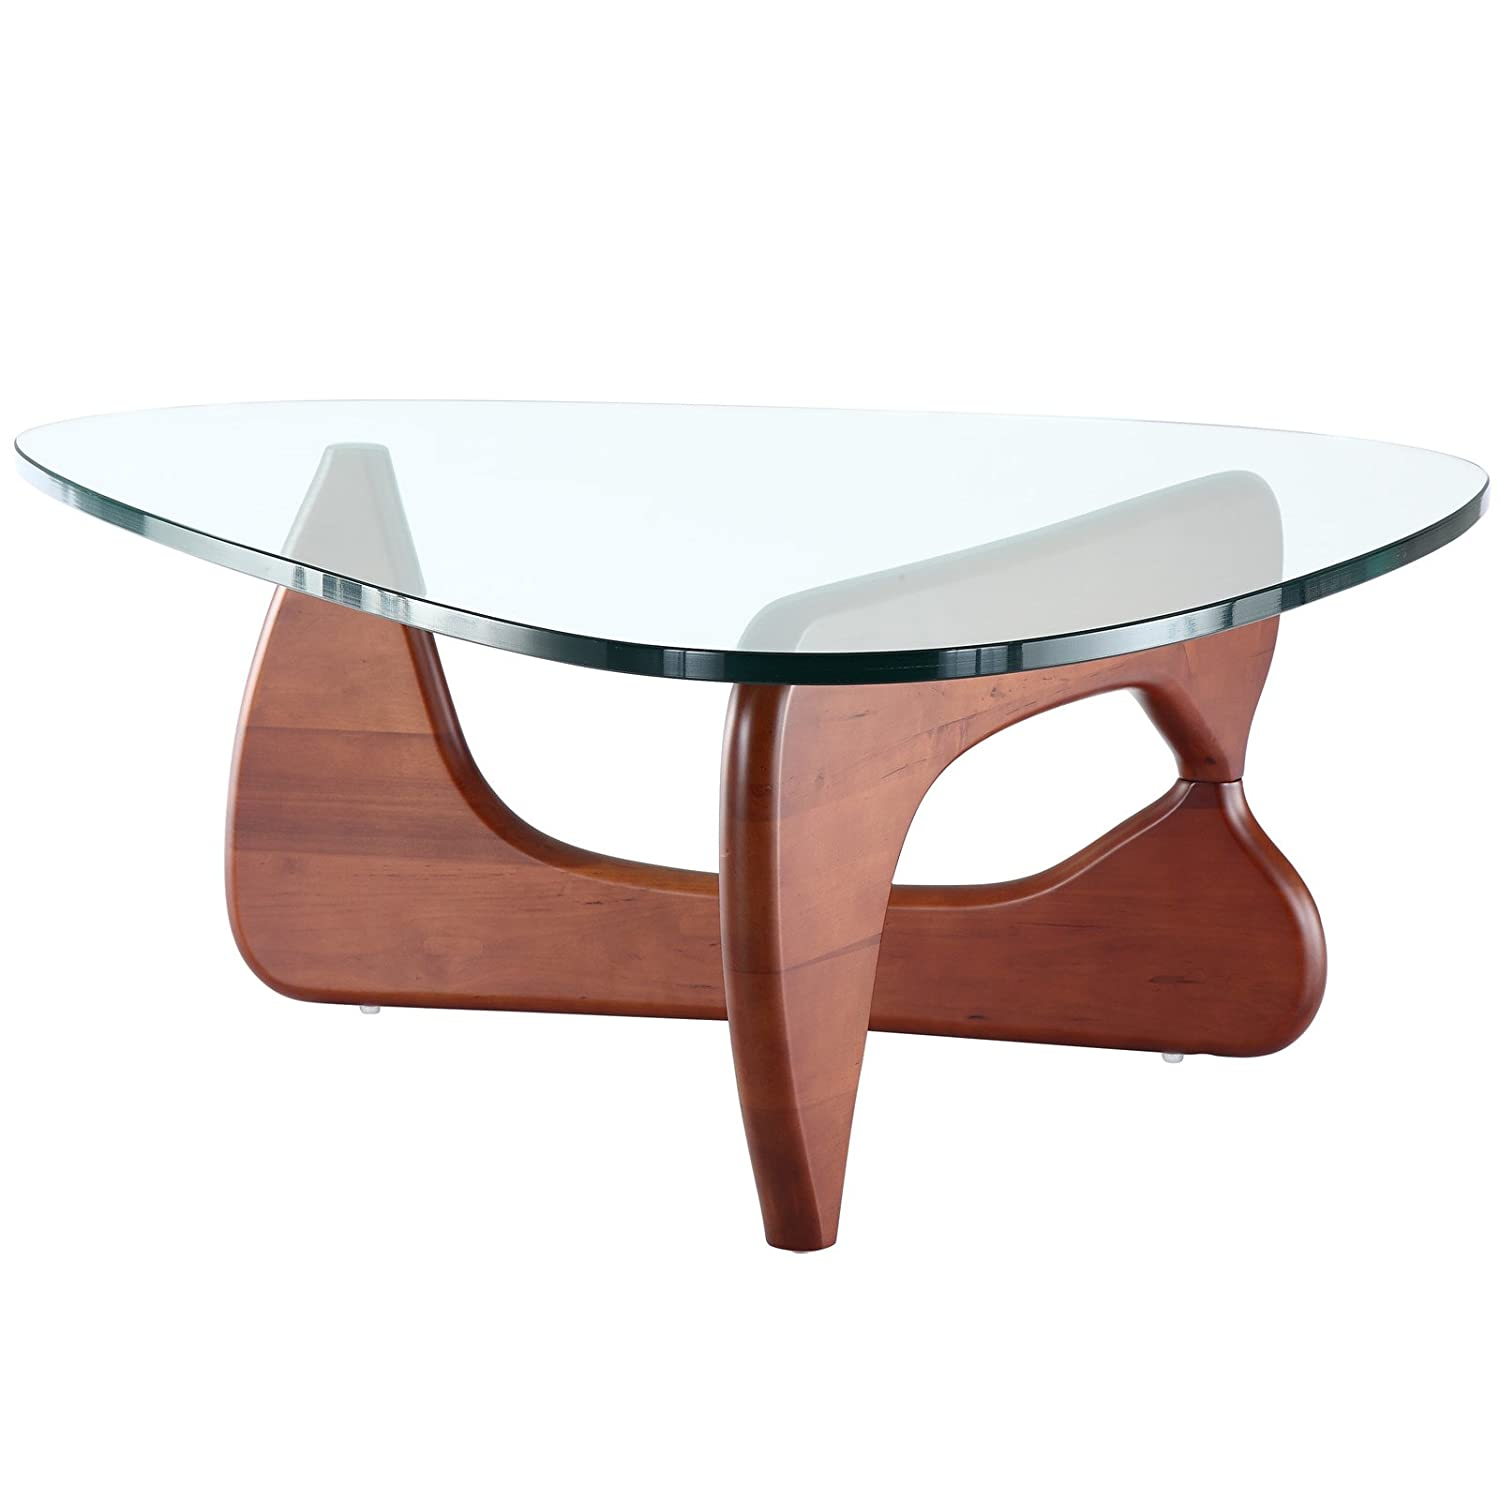 Noguchi Dining Table Images Dining Table Ideas : 61sRZYfBO4LSL1500 from sorahana.info size 1500 x 1500 jpeg 105kB